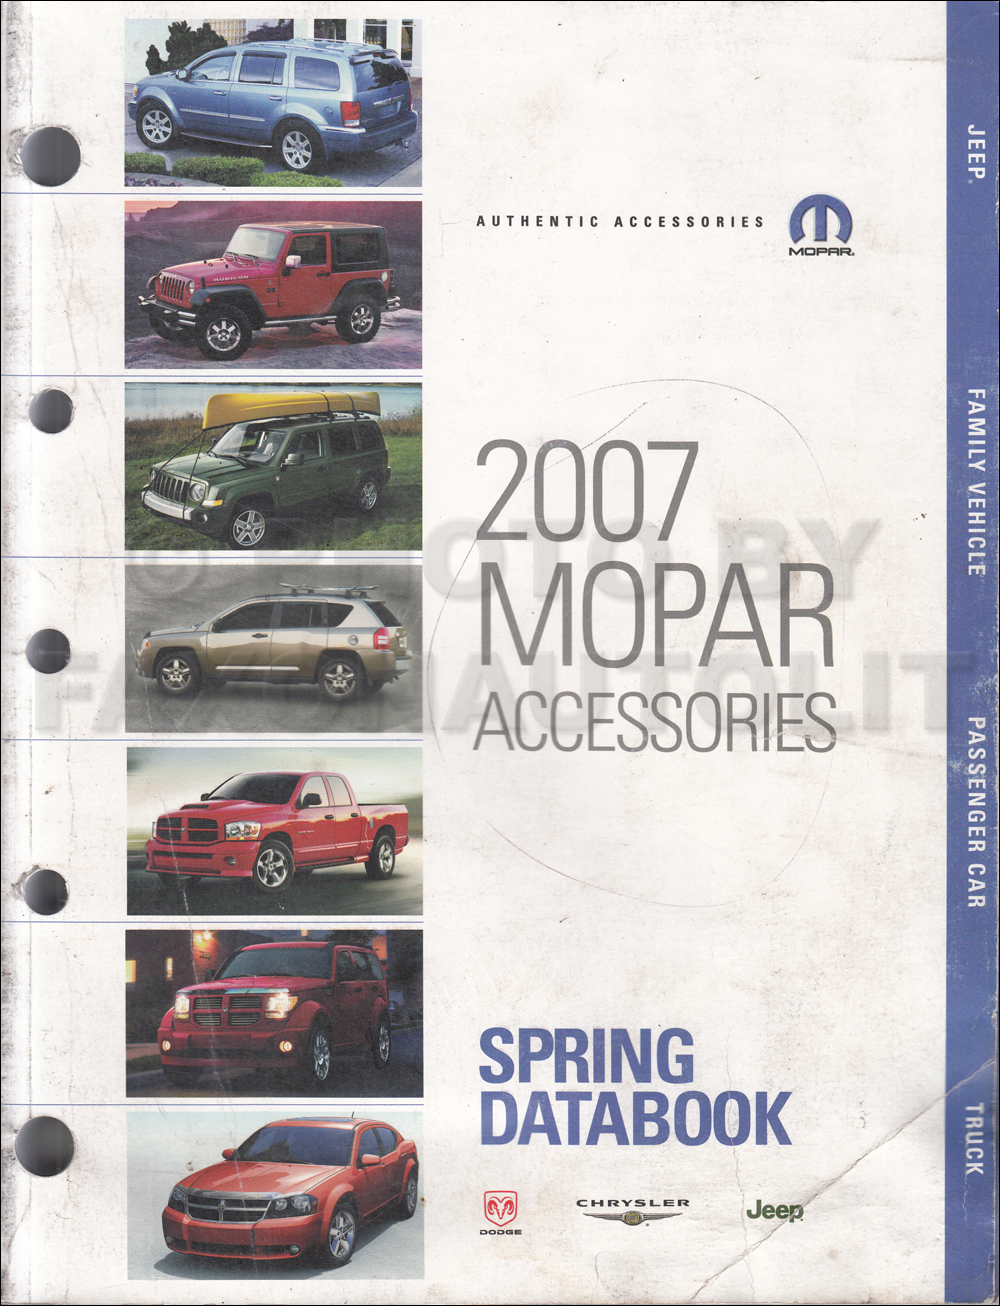 2007 MoPar Accessories Databook Original Spring